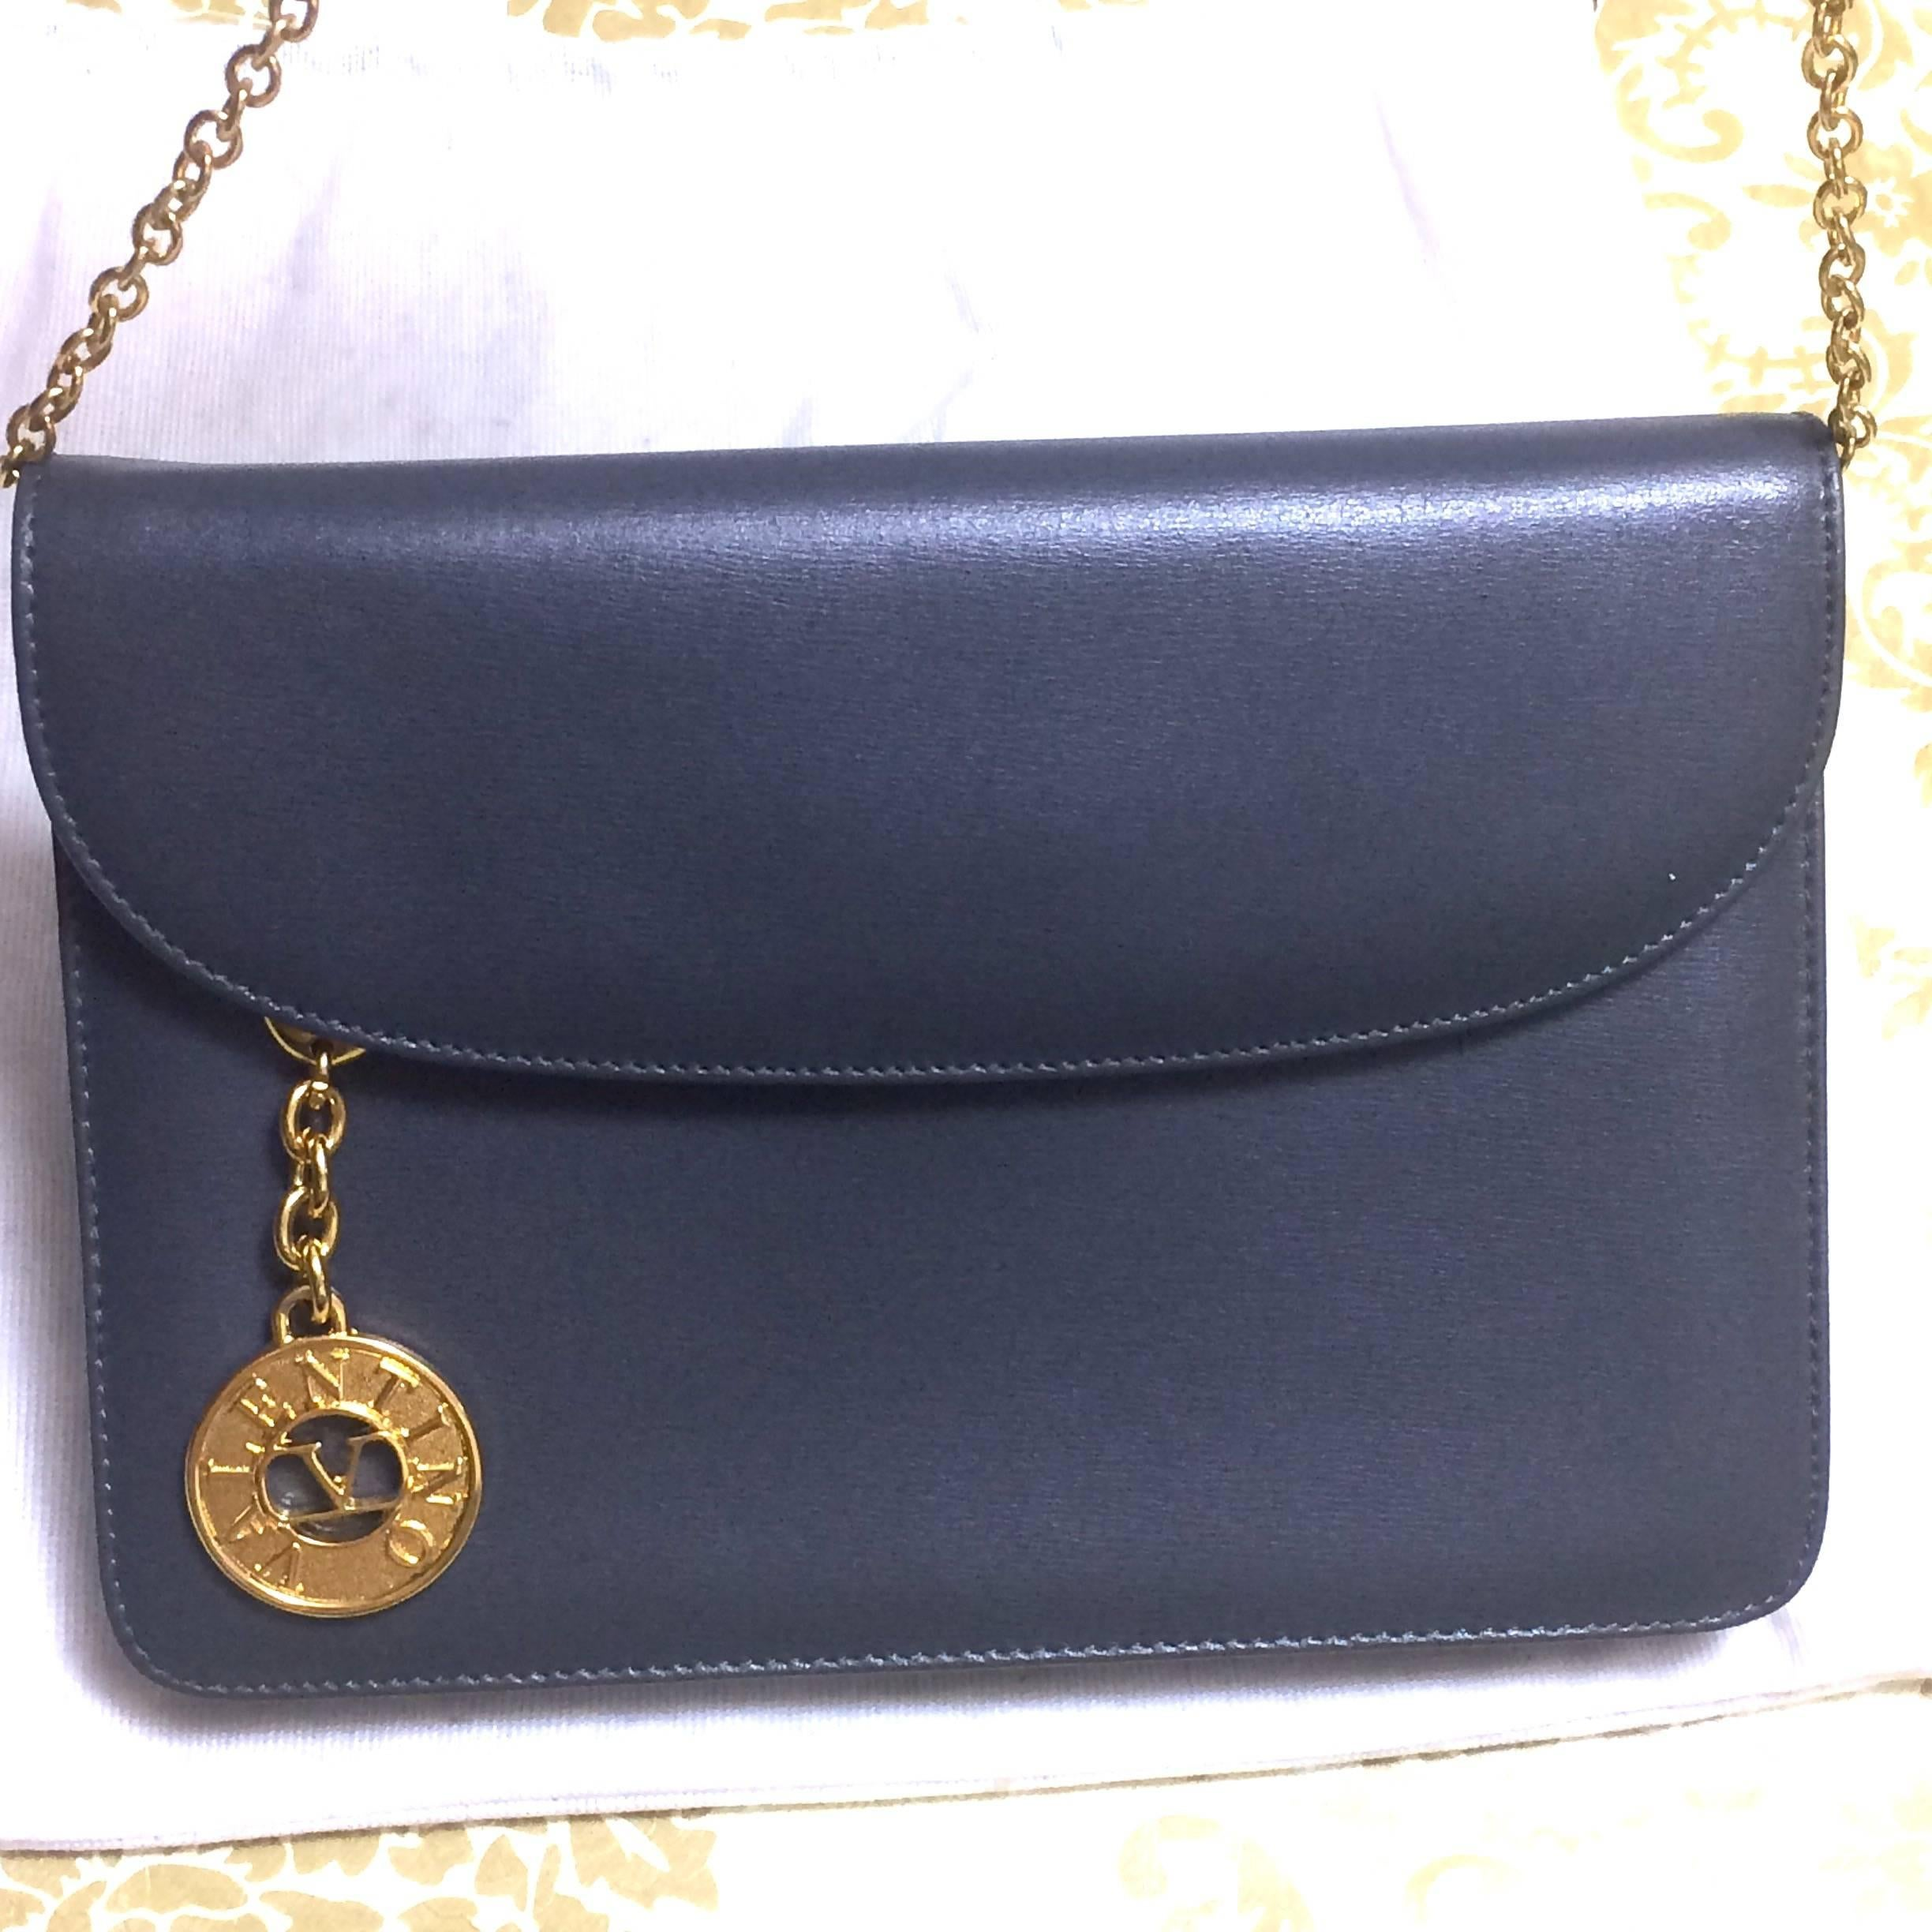 Valentino Vintage Valentino Garavani, Gray Leather Chain Shoulder Bag With Golden V Charm